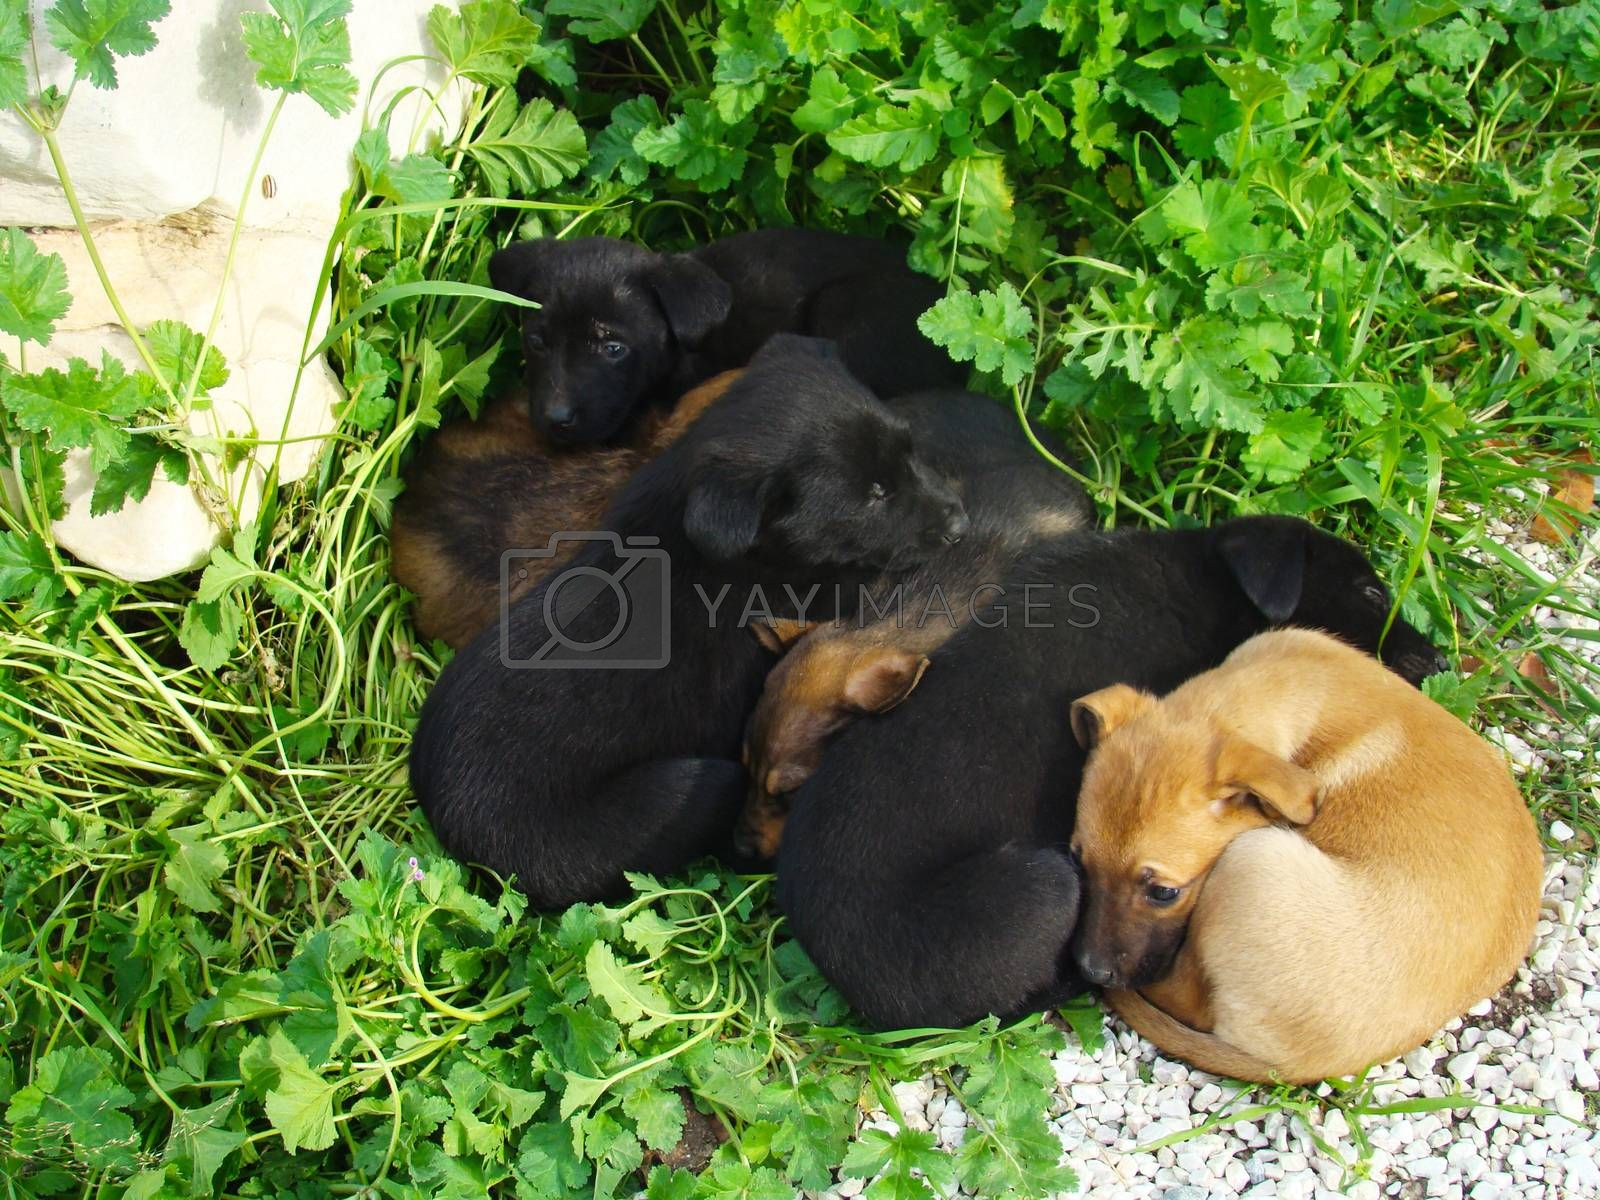 Lot of puppies lying on the grass in the spring sunshine